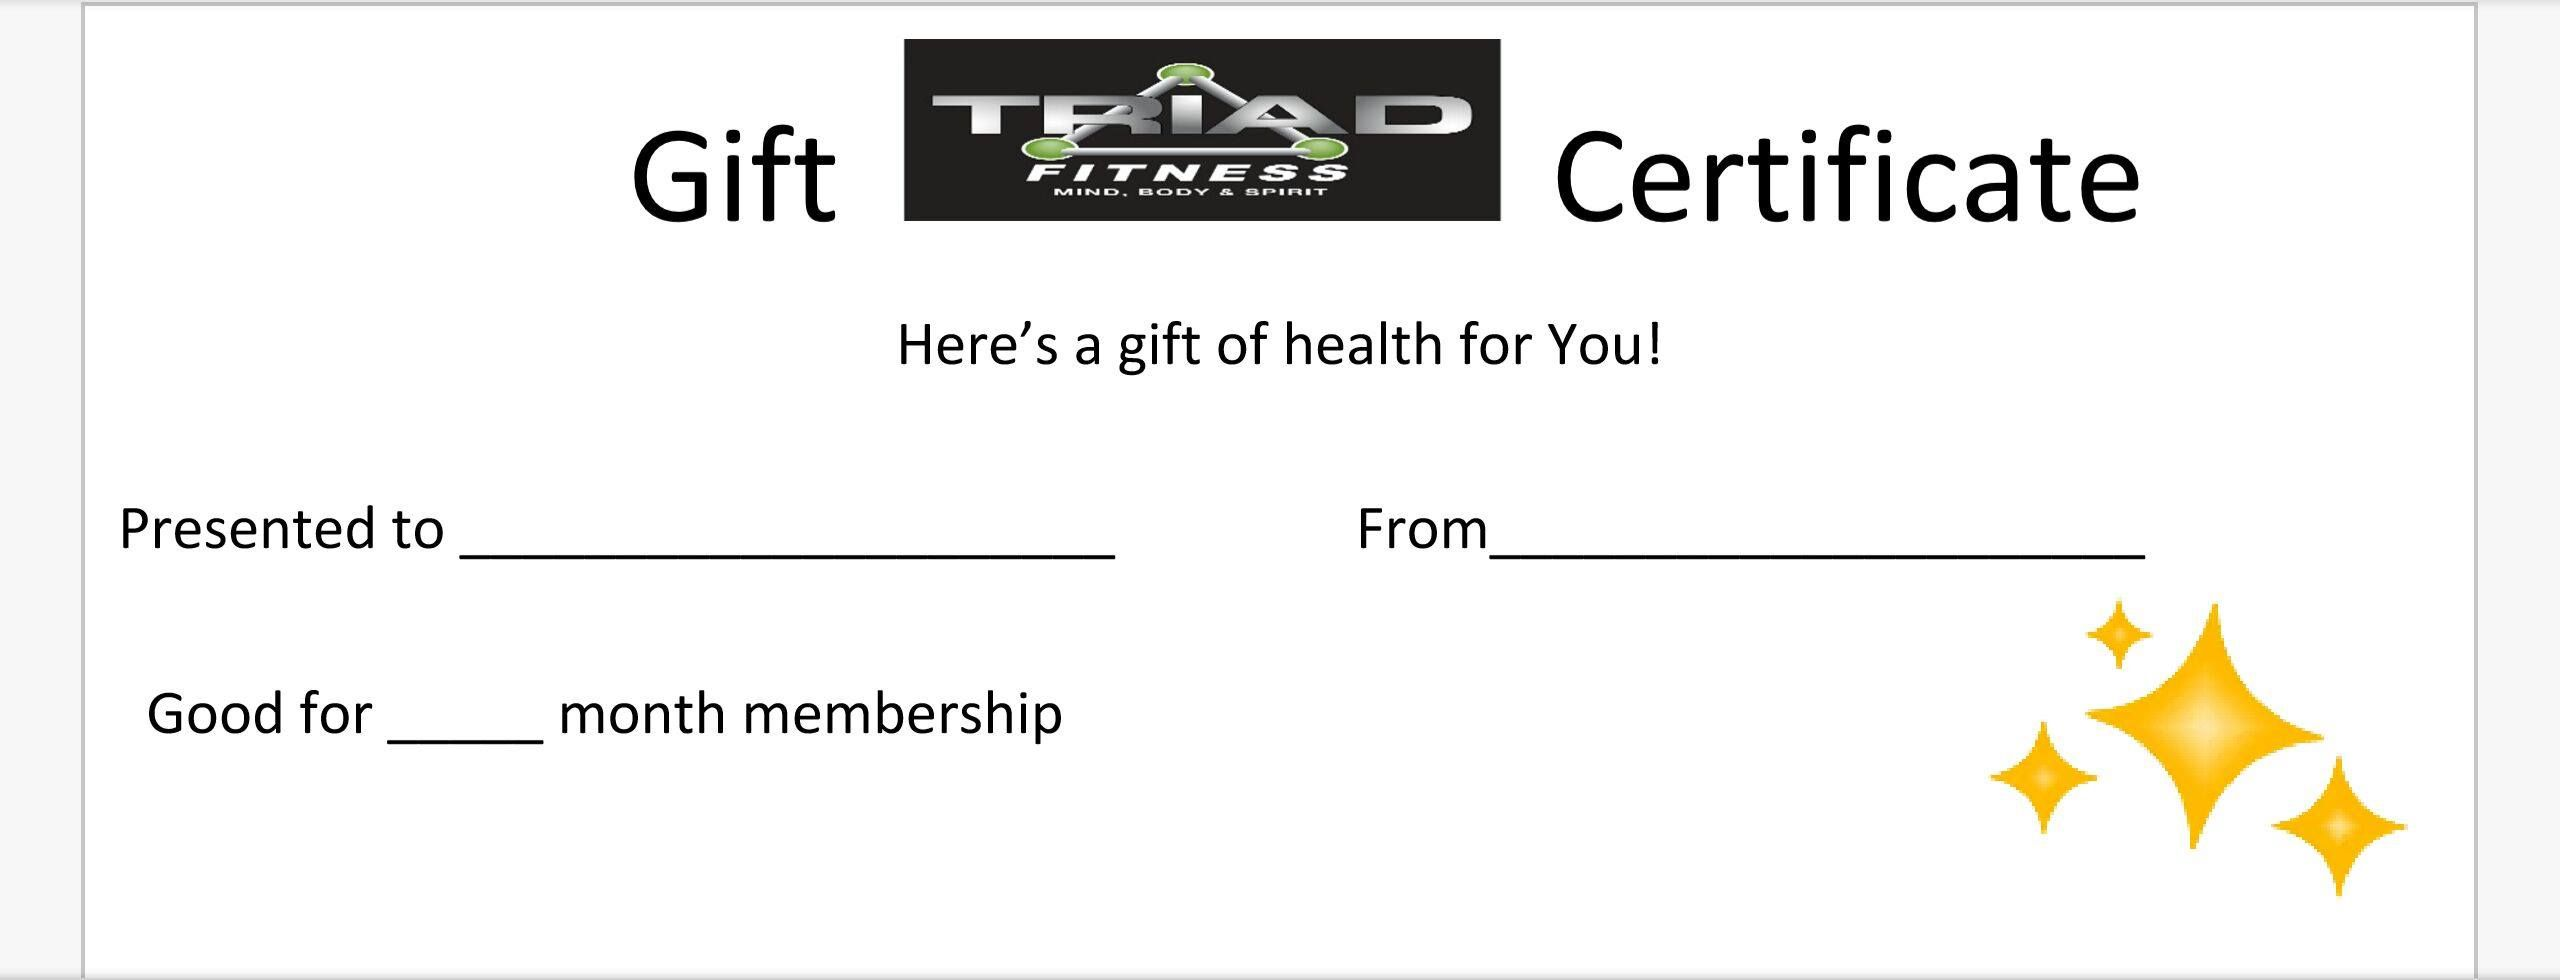 Personal training gift certificate at triad fitness wish list personal training gift certificate at triad fitness xflitez Gallery